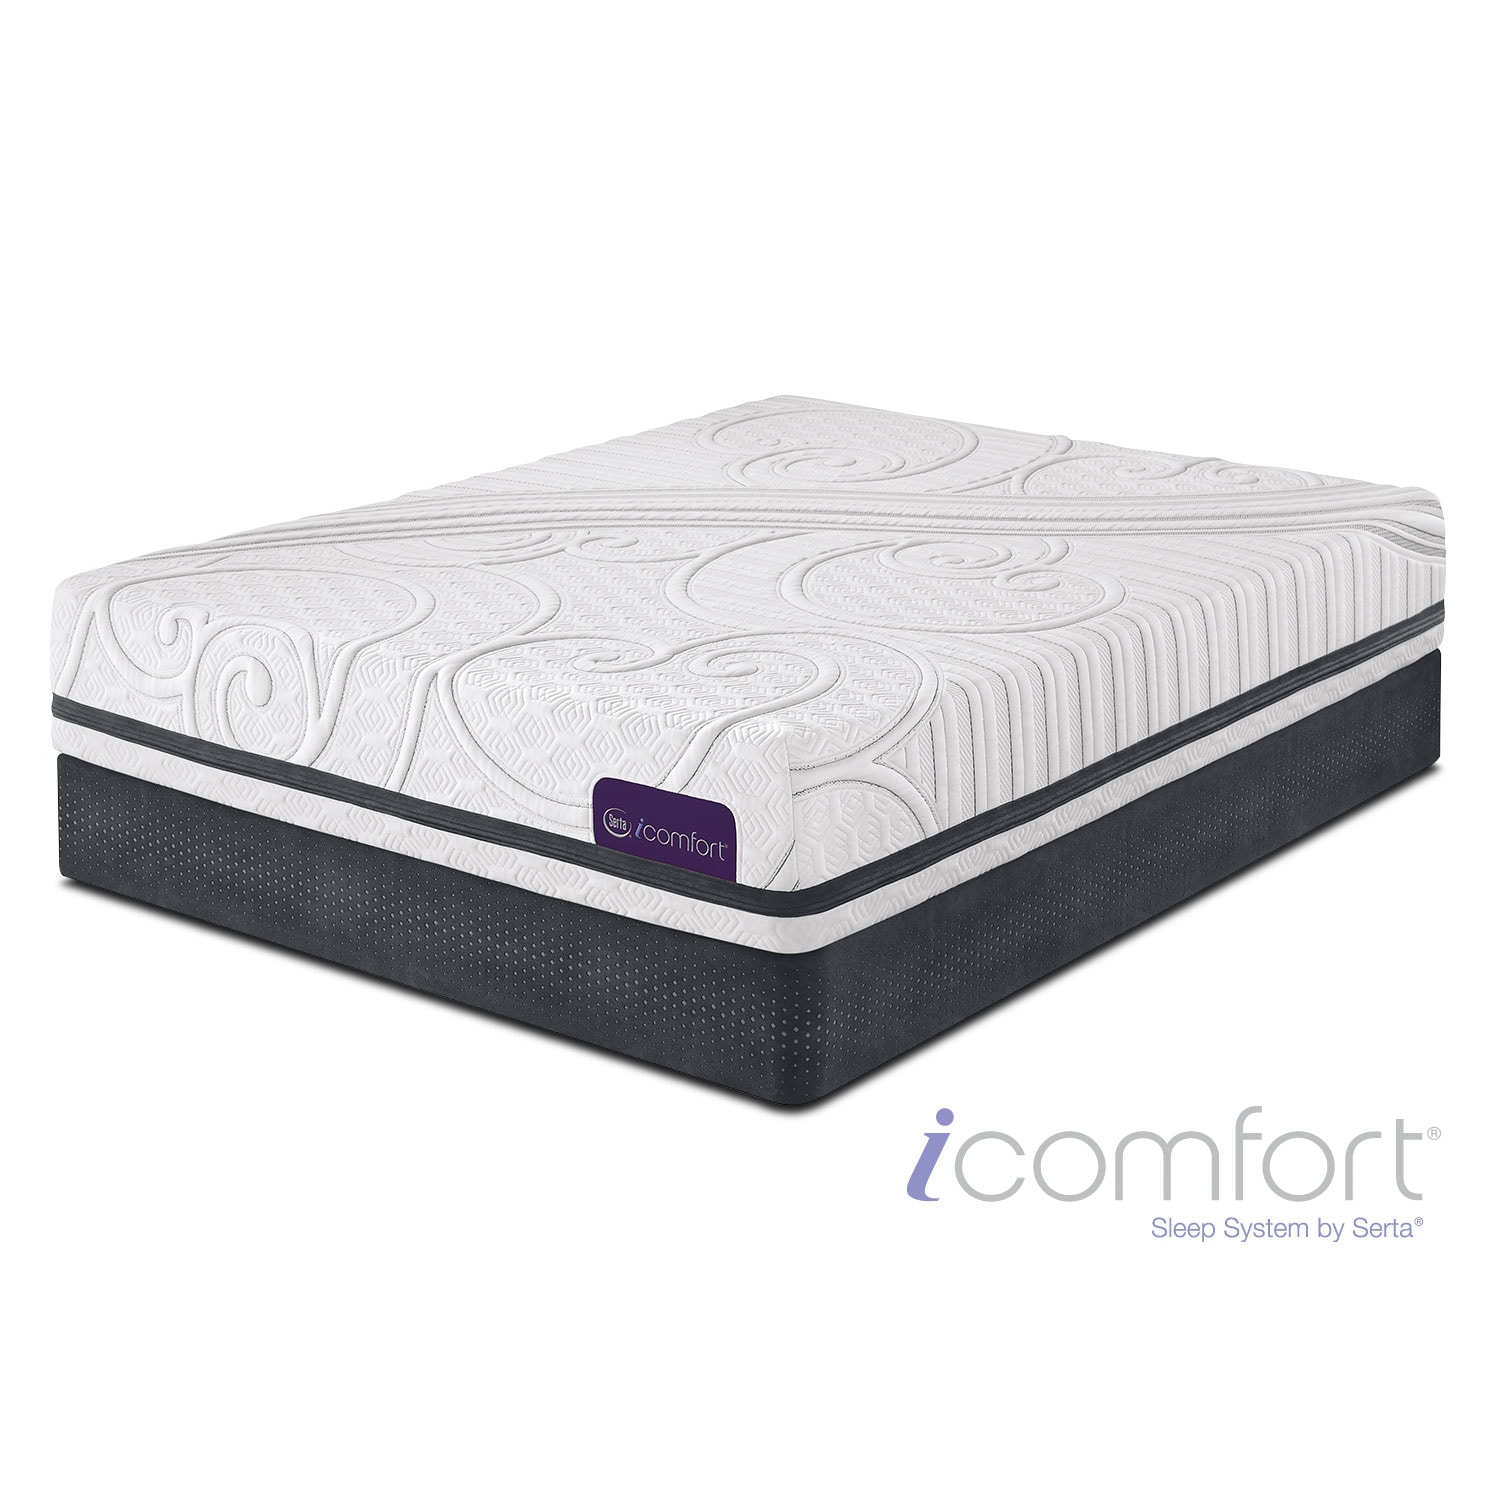 Mattresses and Bedding - Savant III Plush Twin XL Mattress and Foundation Set